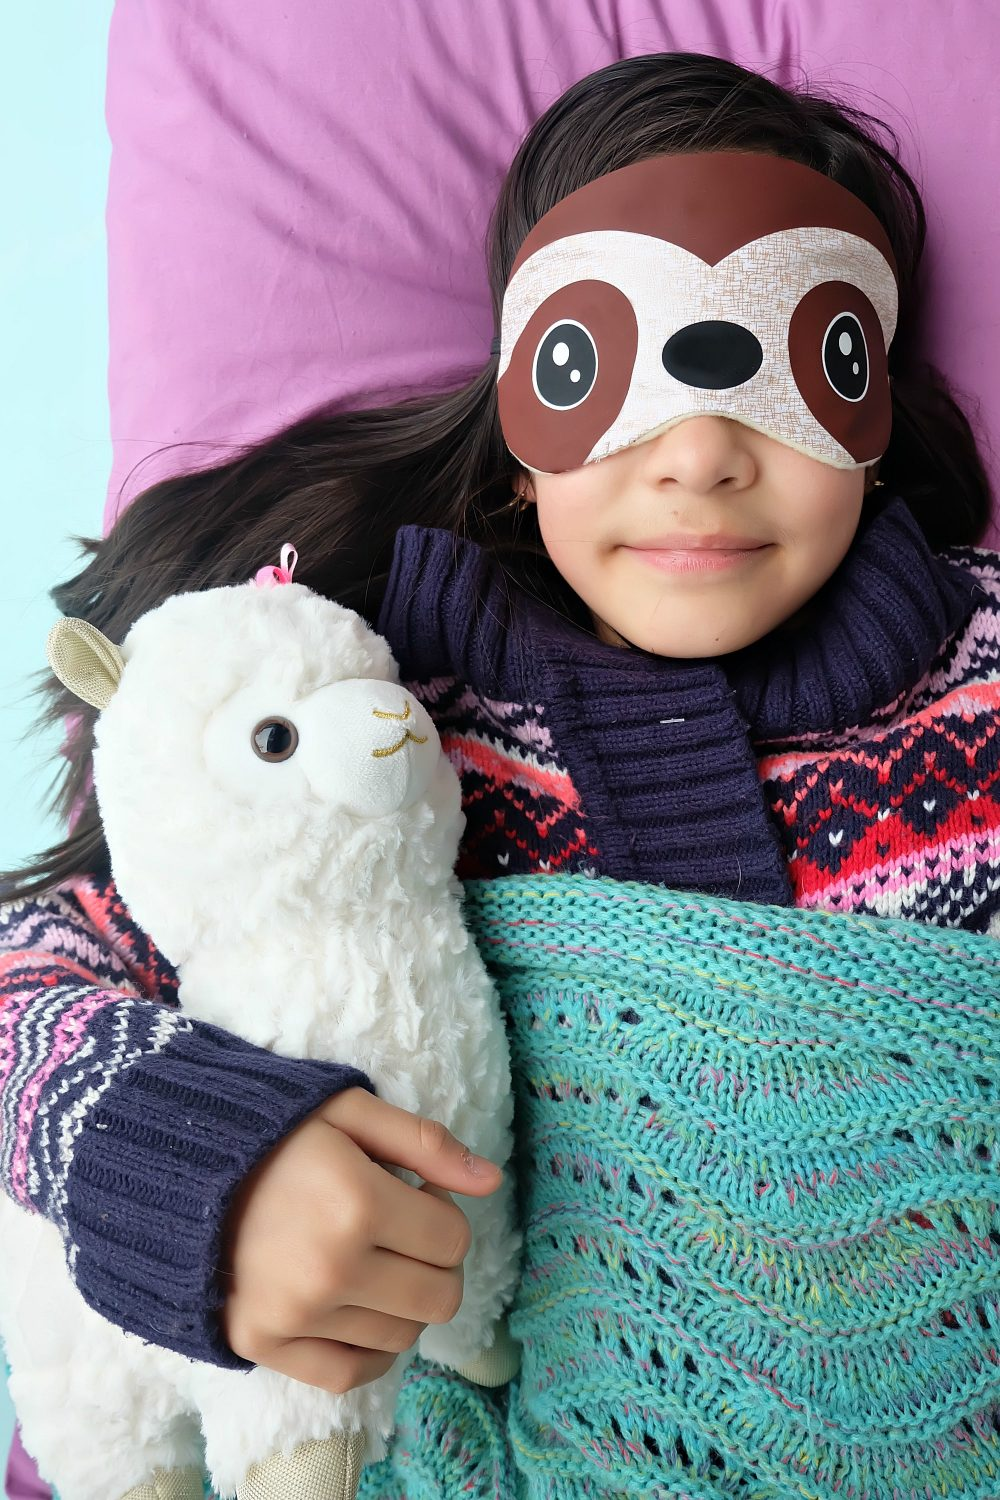 This DIY Sloth Sleep Mask is so stinking cute! Bonus you can make it in just 15 minutes using your Cricut Maker or Cricut Explore. Such a fun and easy Cricut Project! #Cricut #CricutProject #HandmadeGift #Sloth